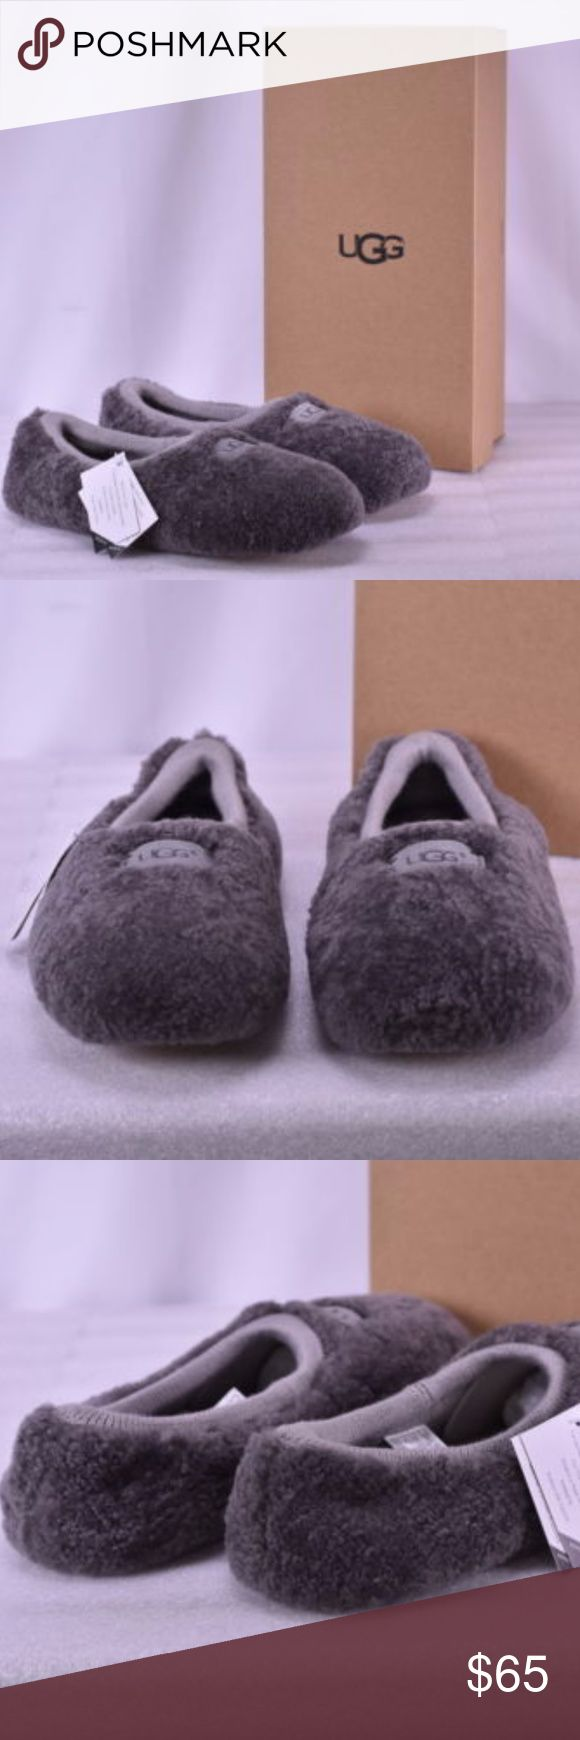 NWT UGG® Women's Birche Sheepskin Slippers, Gray New in box.  Snug, sock-like slippers by UGG® hug your feet with the doubled warmth of genuine sheepskin and plush UGGpure™ wool. Fits true to size. Round toe; slip on Curly UGGpure™ wool lining Real sheepskin fur; origin: Australia, USA or UK; dyed Genuine sheepskin, textile and leather upper, textile lining, leather sole. UGG Shoes Slippers